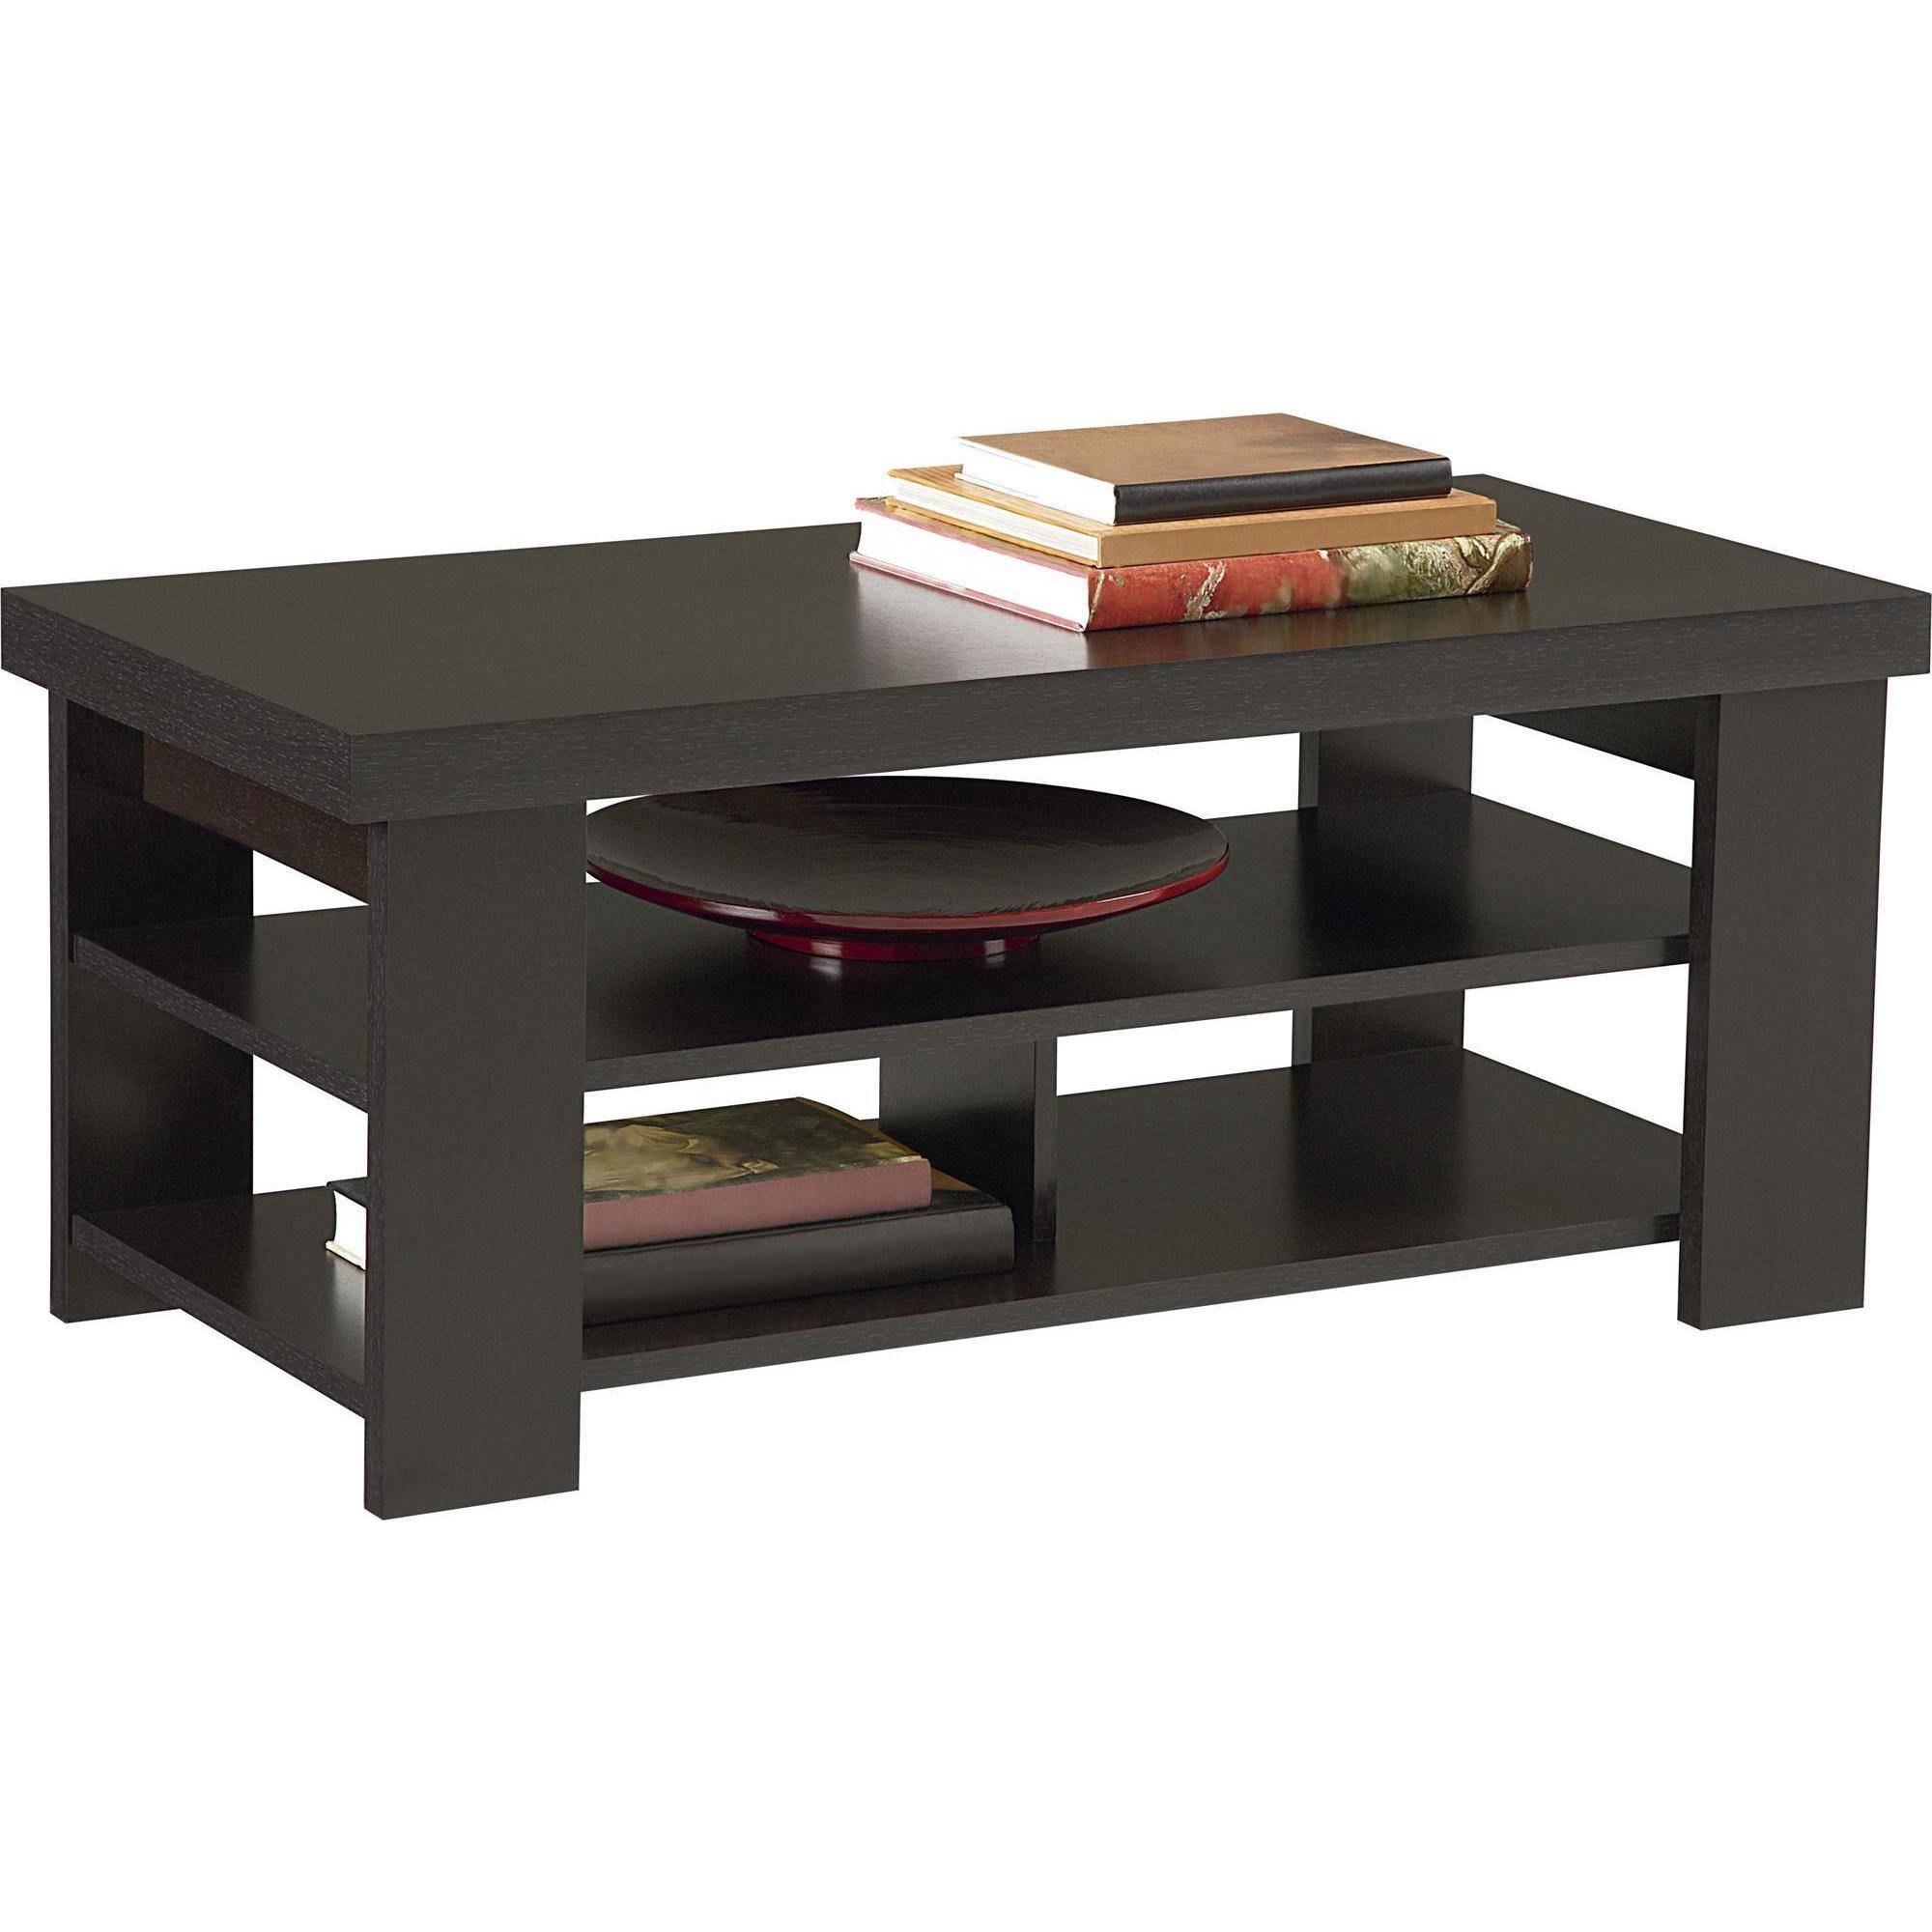 ameriwood home jensen coffee table multiple colors end espresso finish bedside cabinet unfinished armoire steel base the calendar still used today inch tall console diy pallet